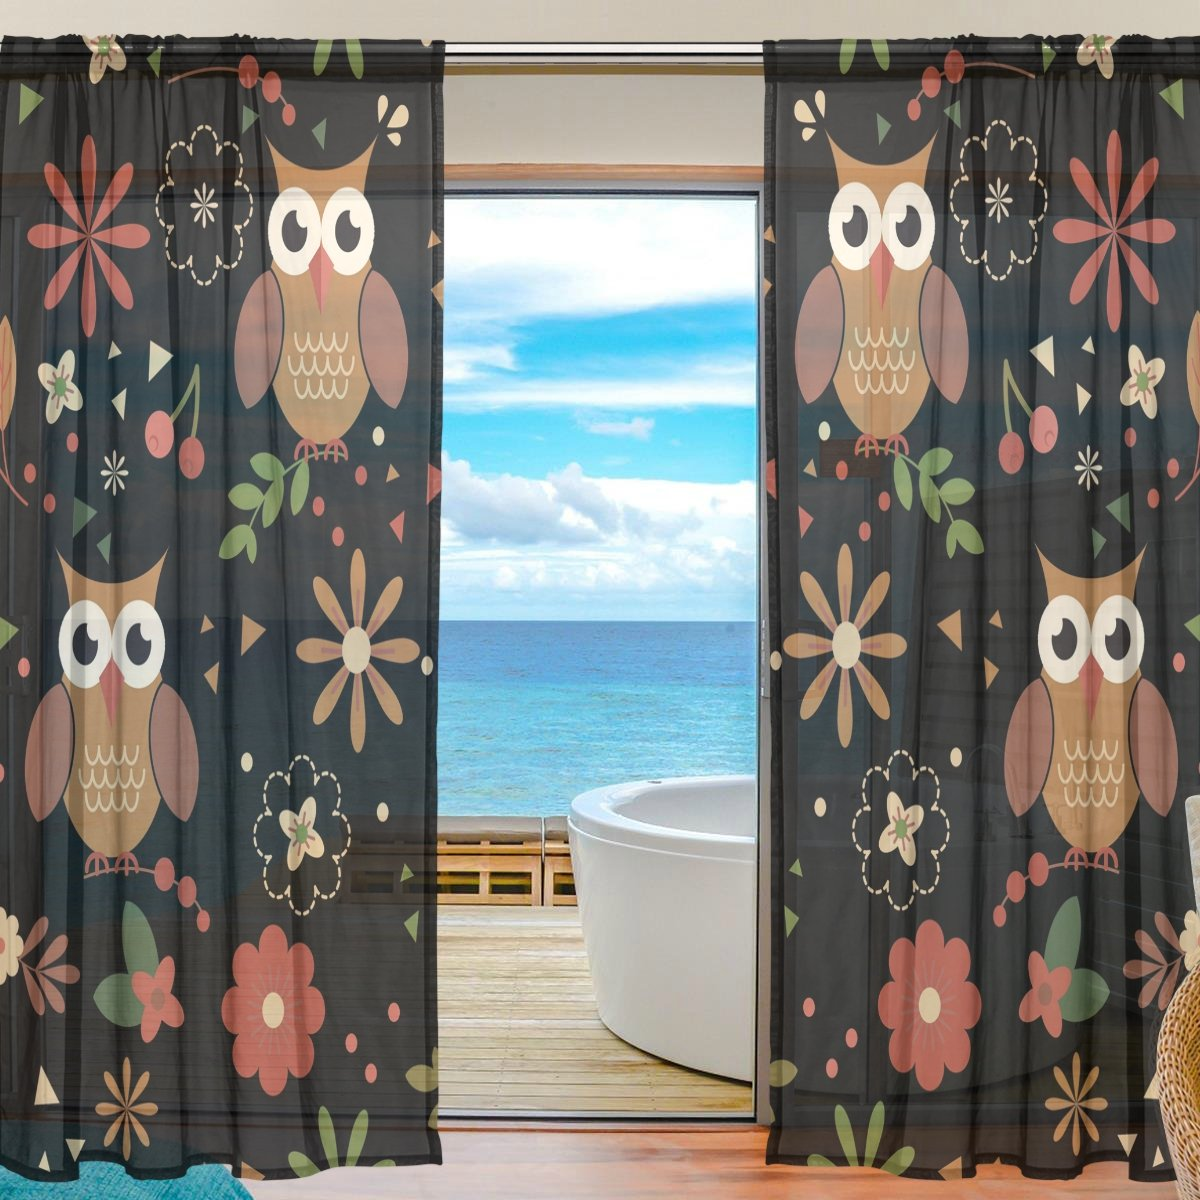 SEULIFE Window Sheer Curtain Floral Flower Cute Animal Owl Voile Curtain Drapes for Door Kitchen Living Room Bedroom 55x78 inches 2 Panels